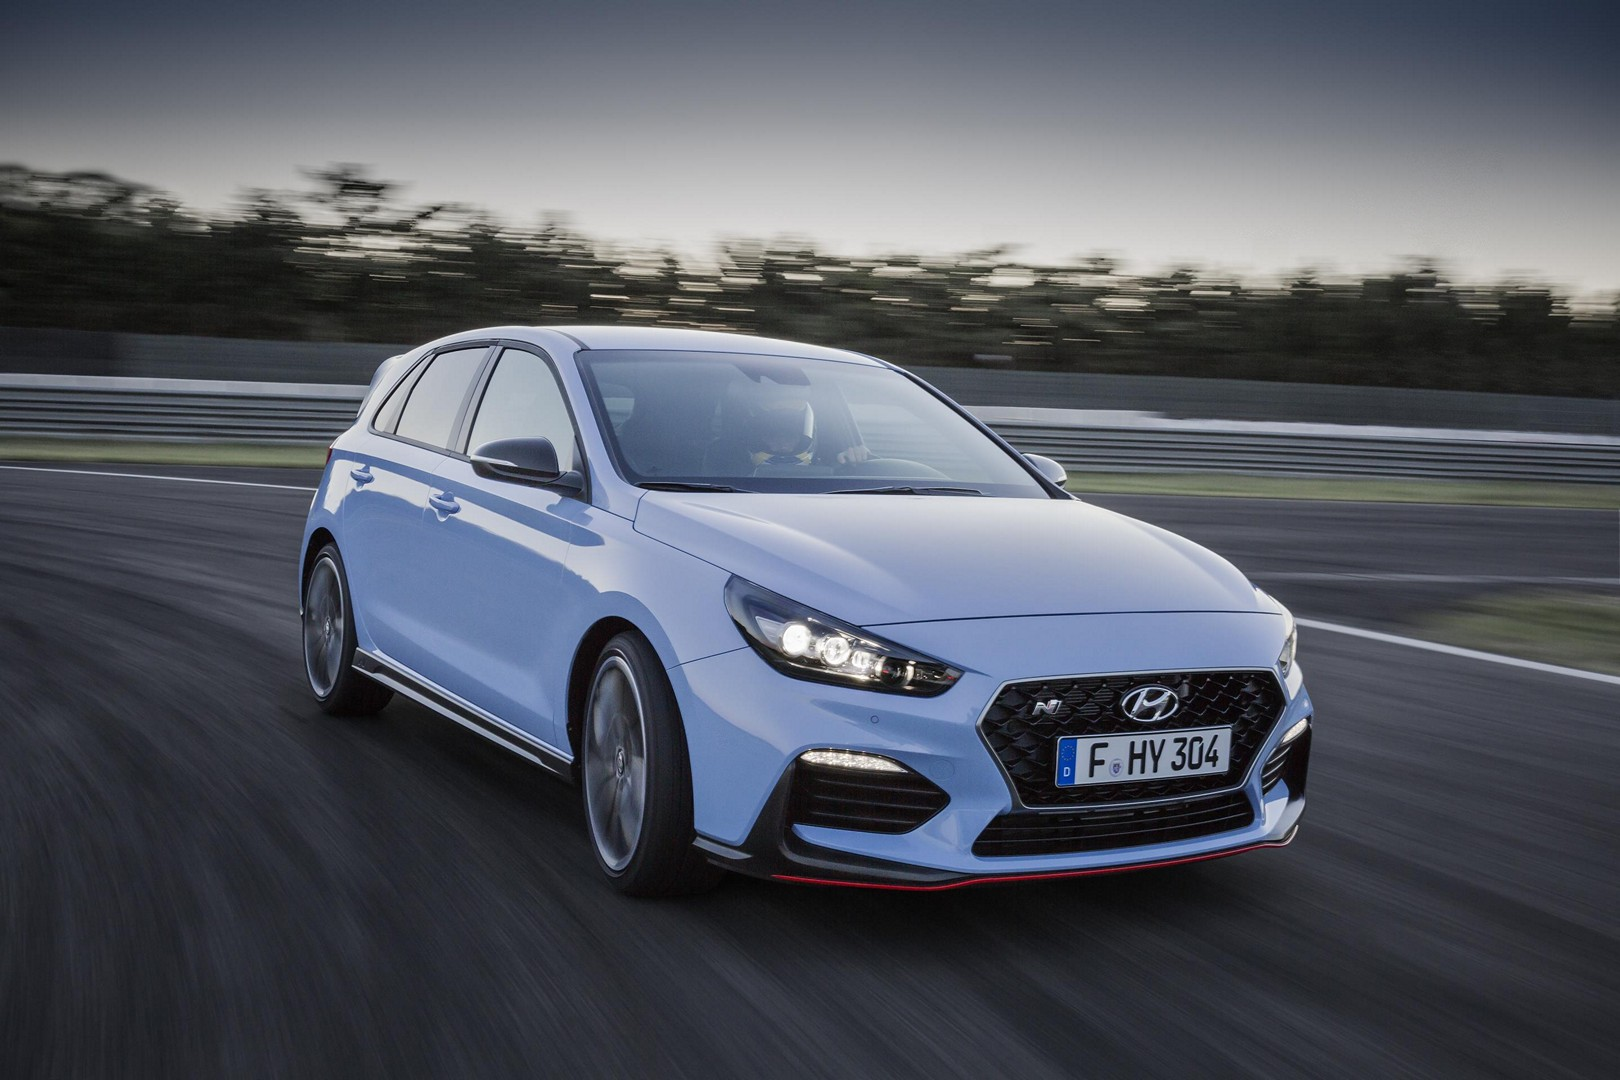 2018 Hyundai I30 N Revealed With 275 Hp E And Drive Modes